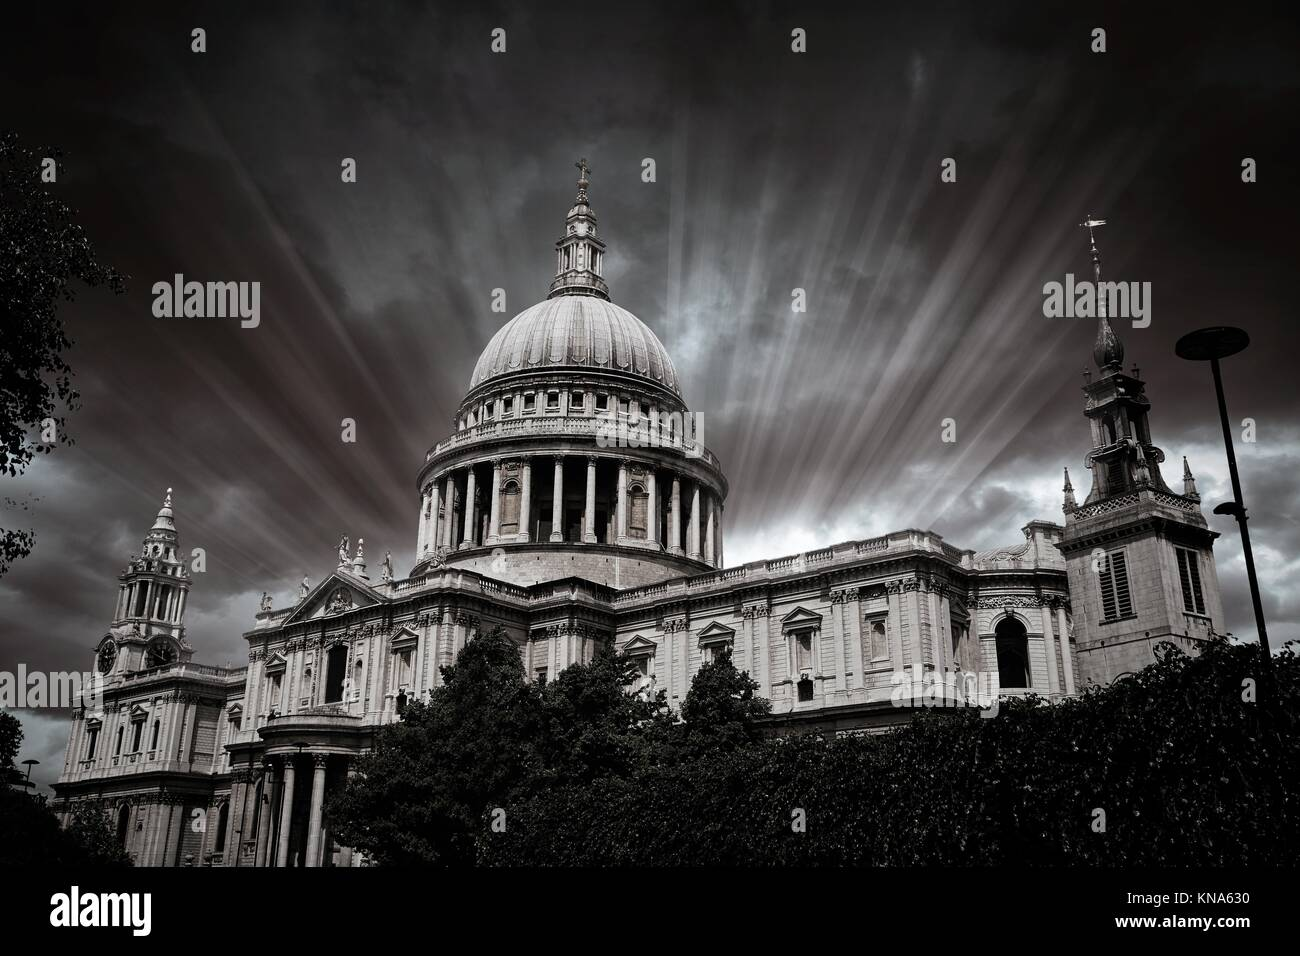 London St Paul Pauls Cathedral facade in England. - Stock Image